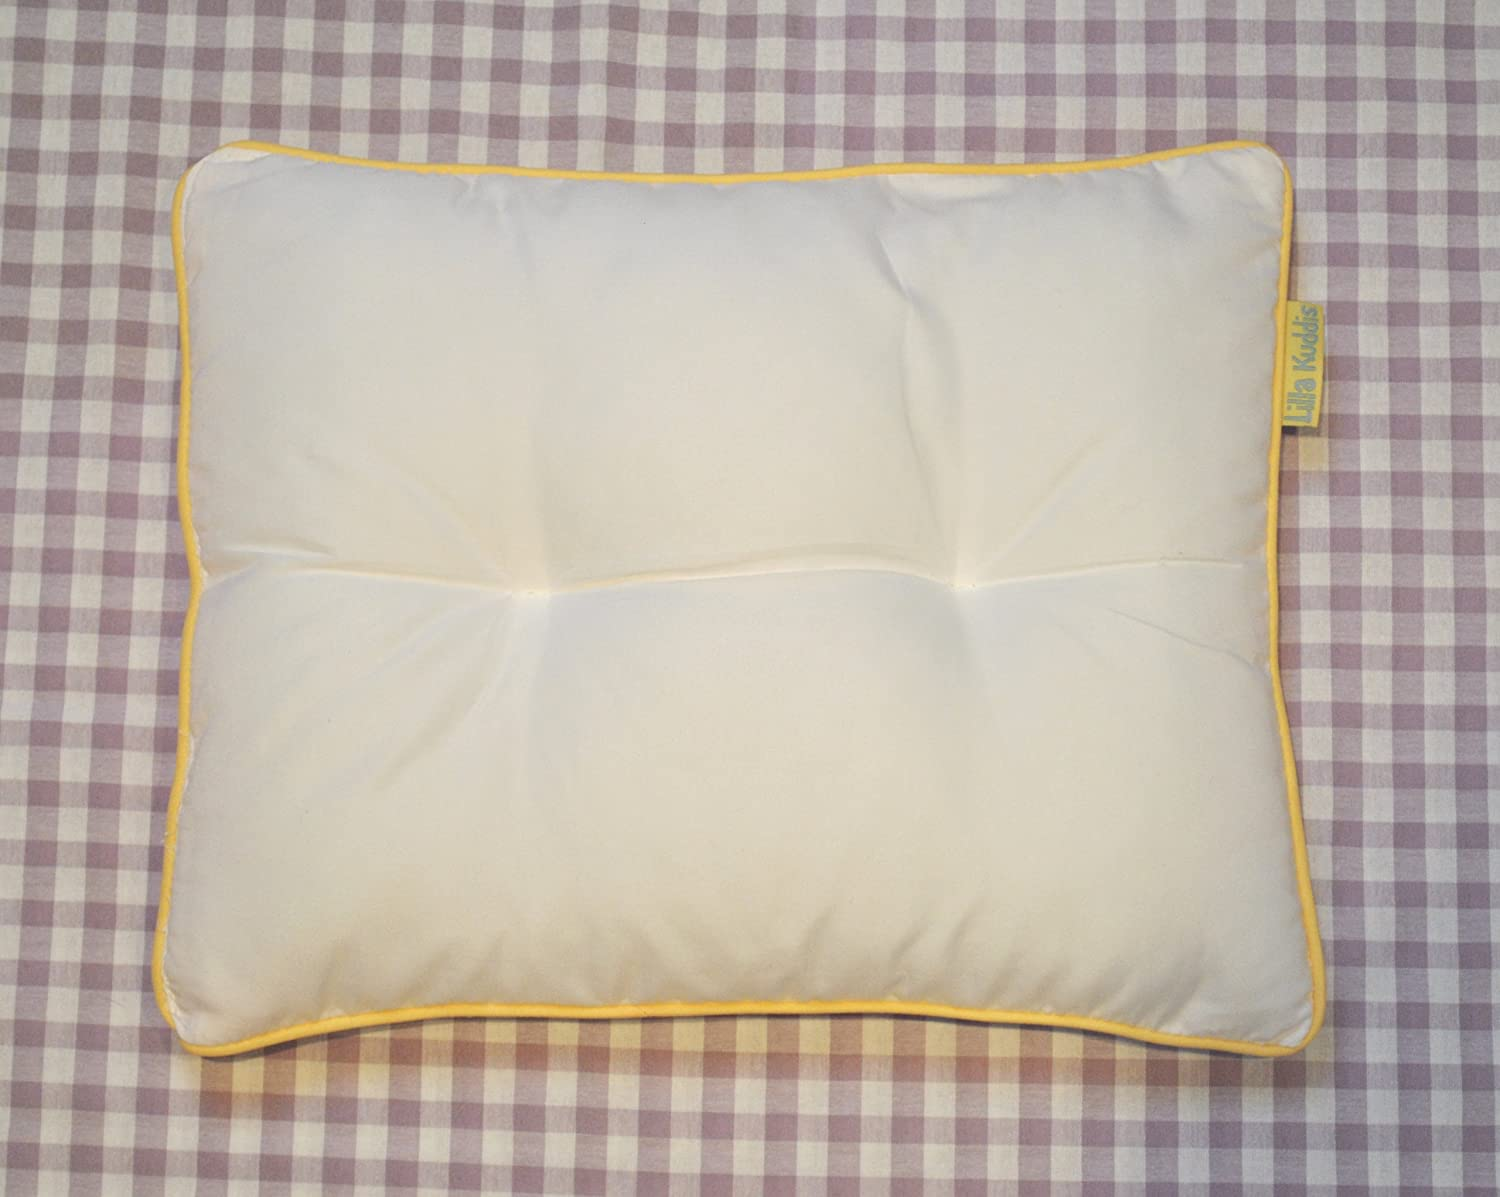 Lilla Kuddis Pk2 Pillow Cases for Moses